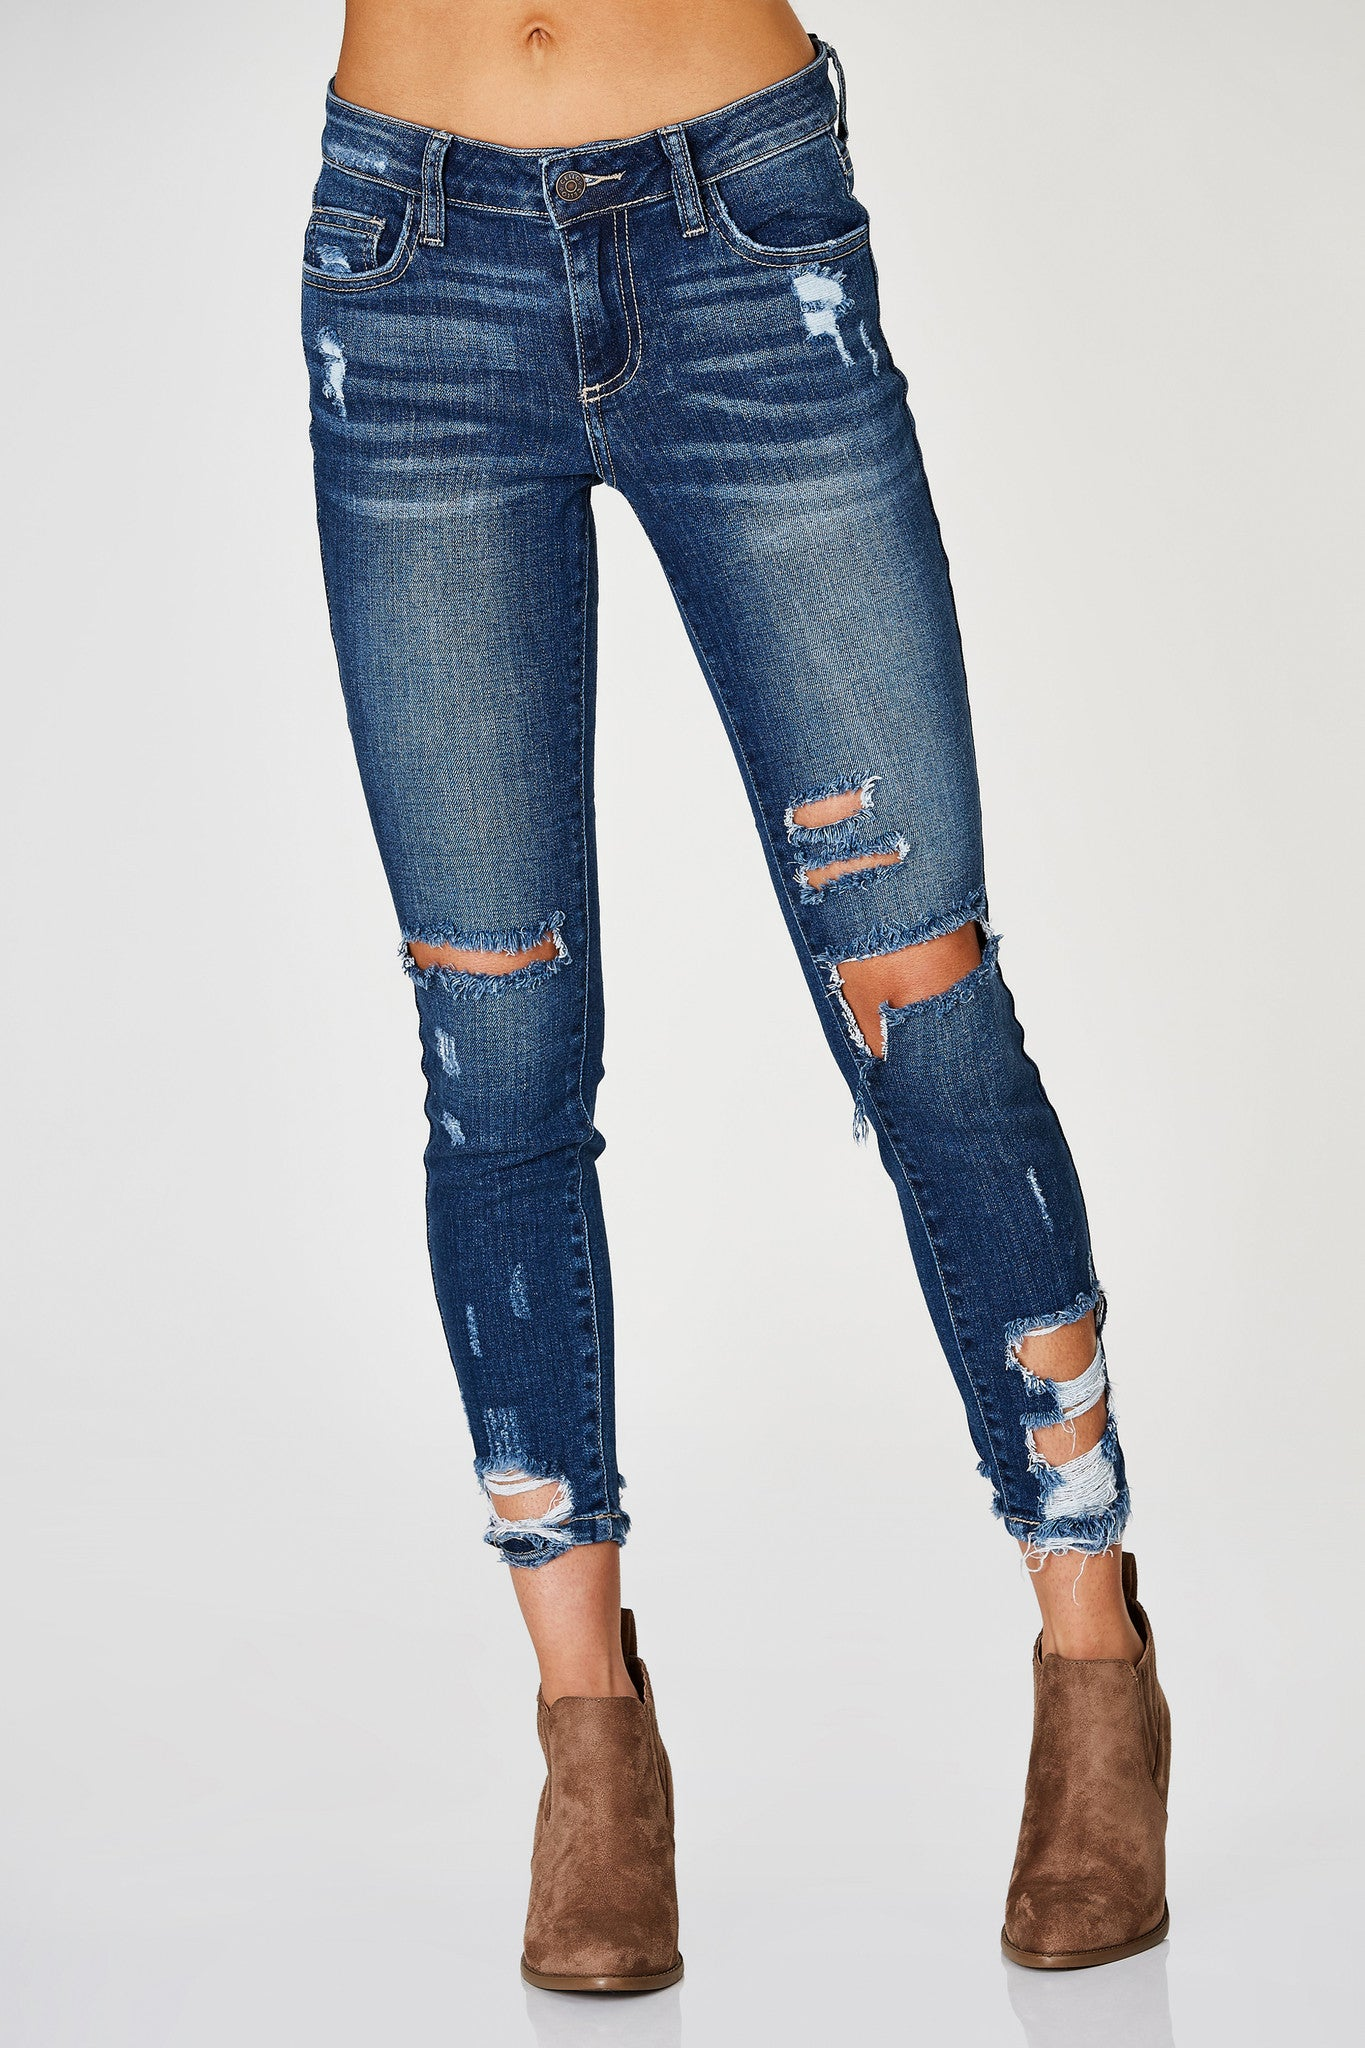 A dope pair of skinny jeans with trendy distressing throughout. Shredded tapered hem with a flattering slim fit. The perfect pair of denims to style with a clean white tee for a girl next door look.